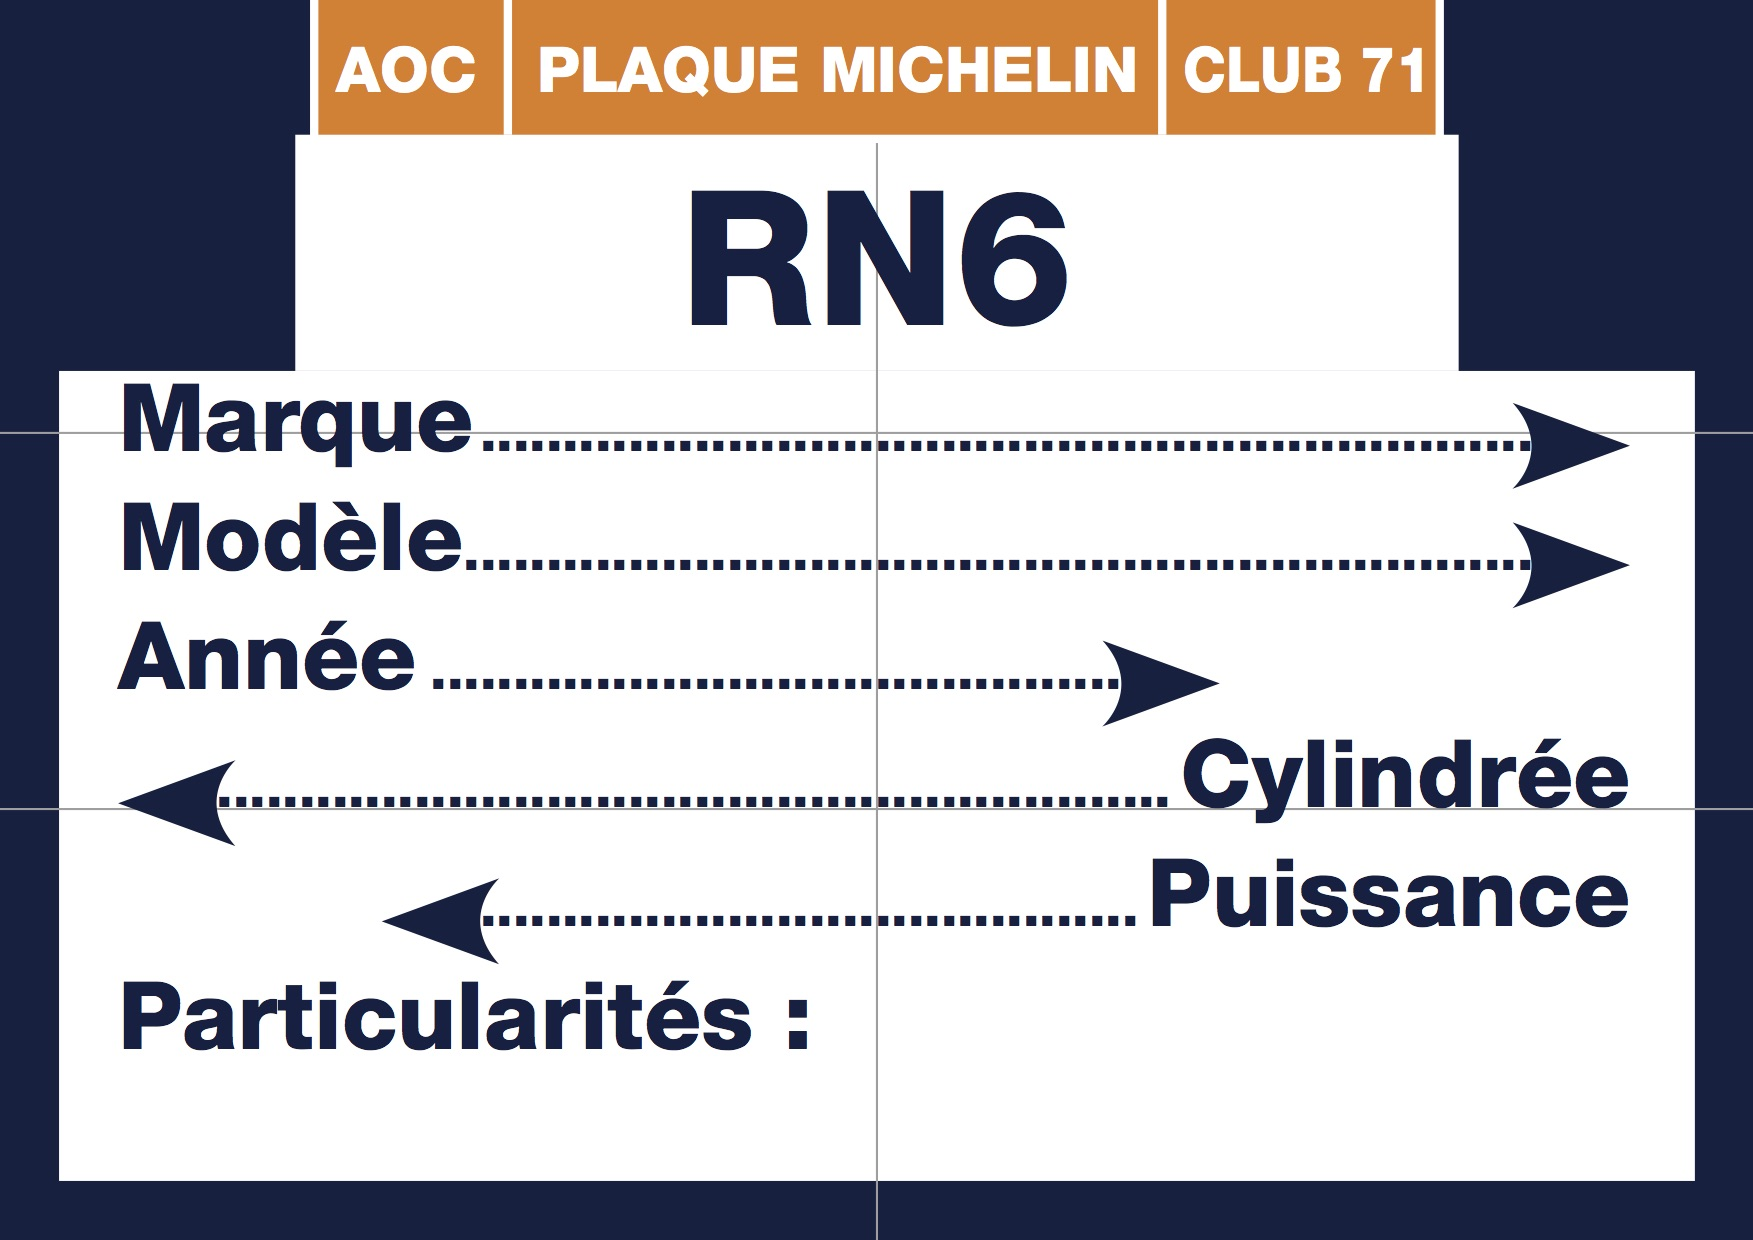 Plaque-Michelin RN6 1